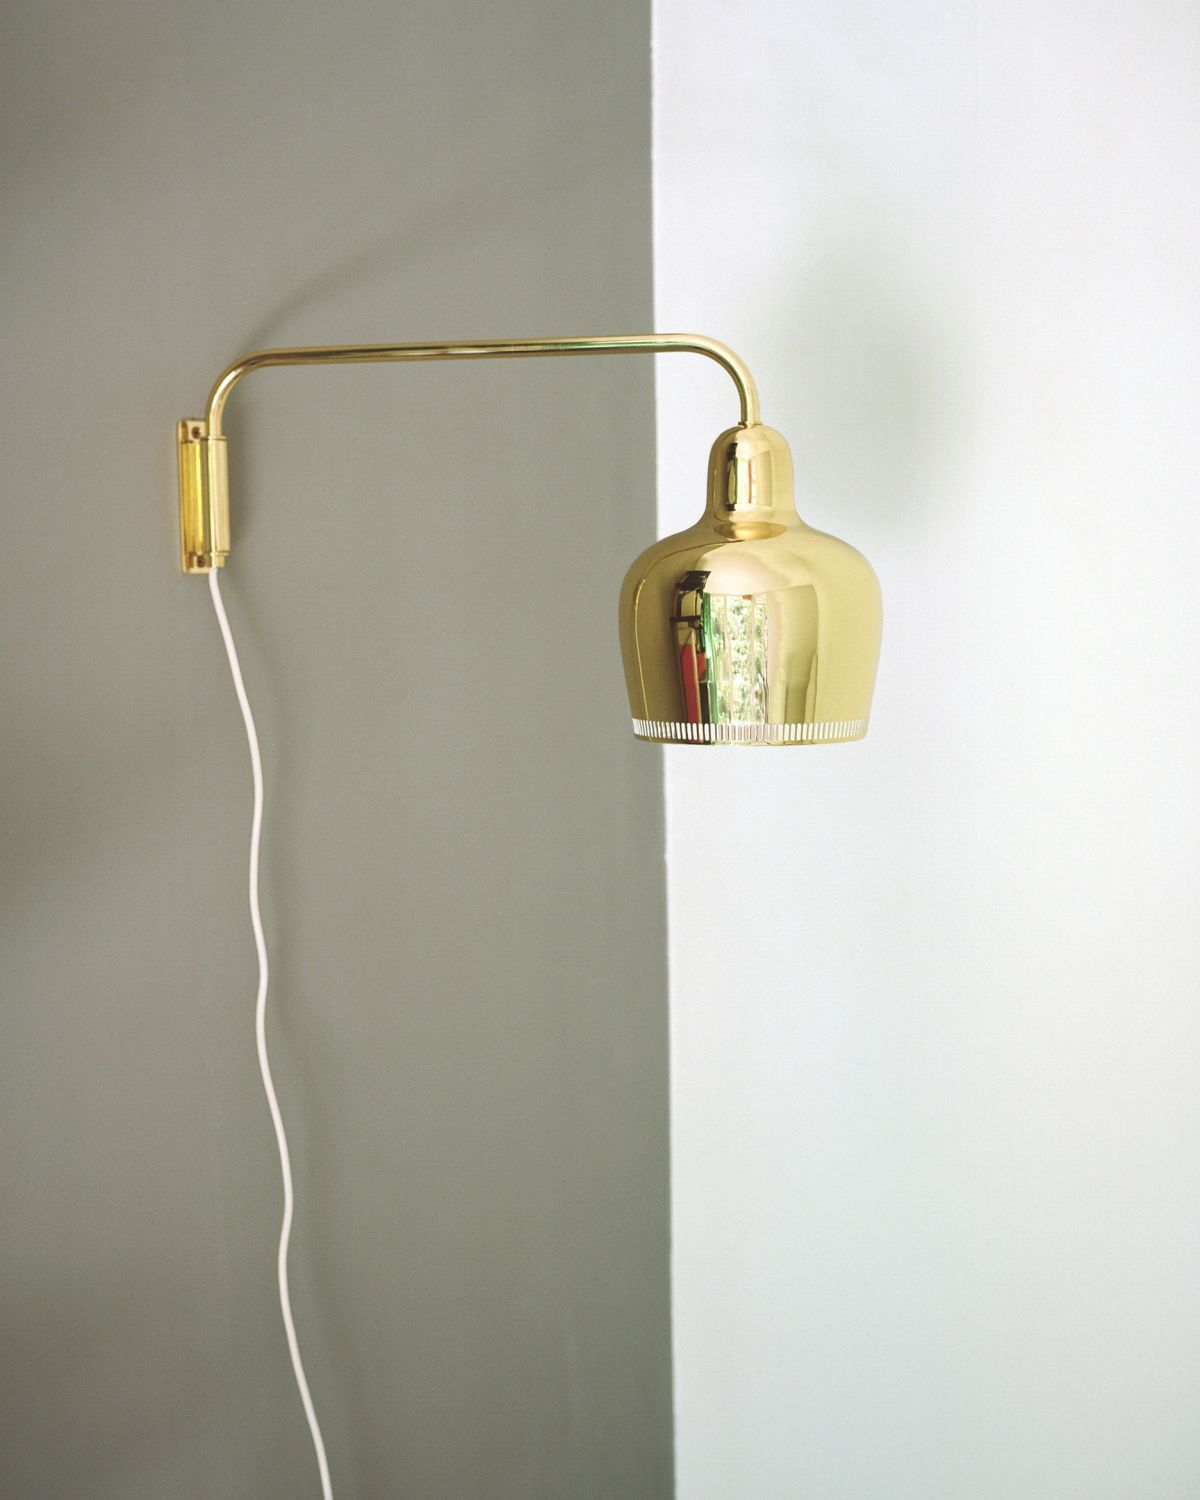 Wall_Light_A330S_Golden_Bell_Brass-2387526